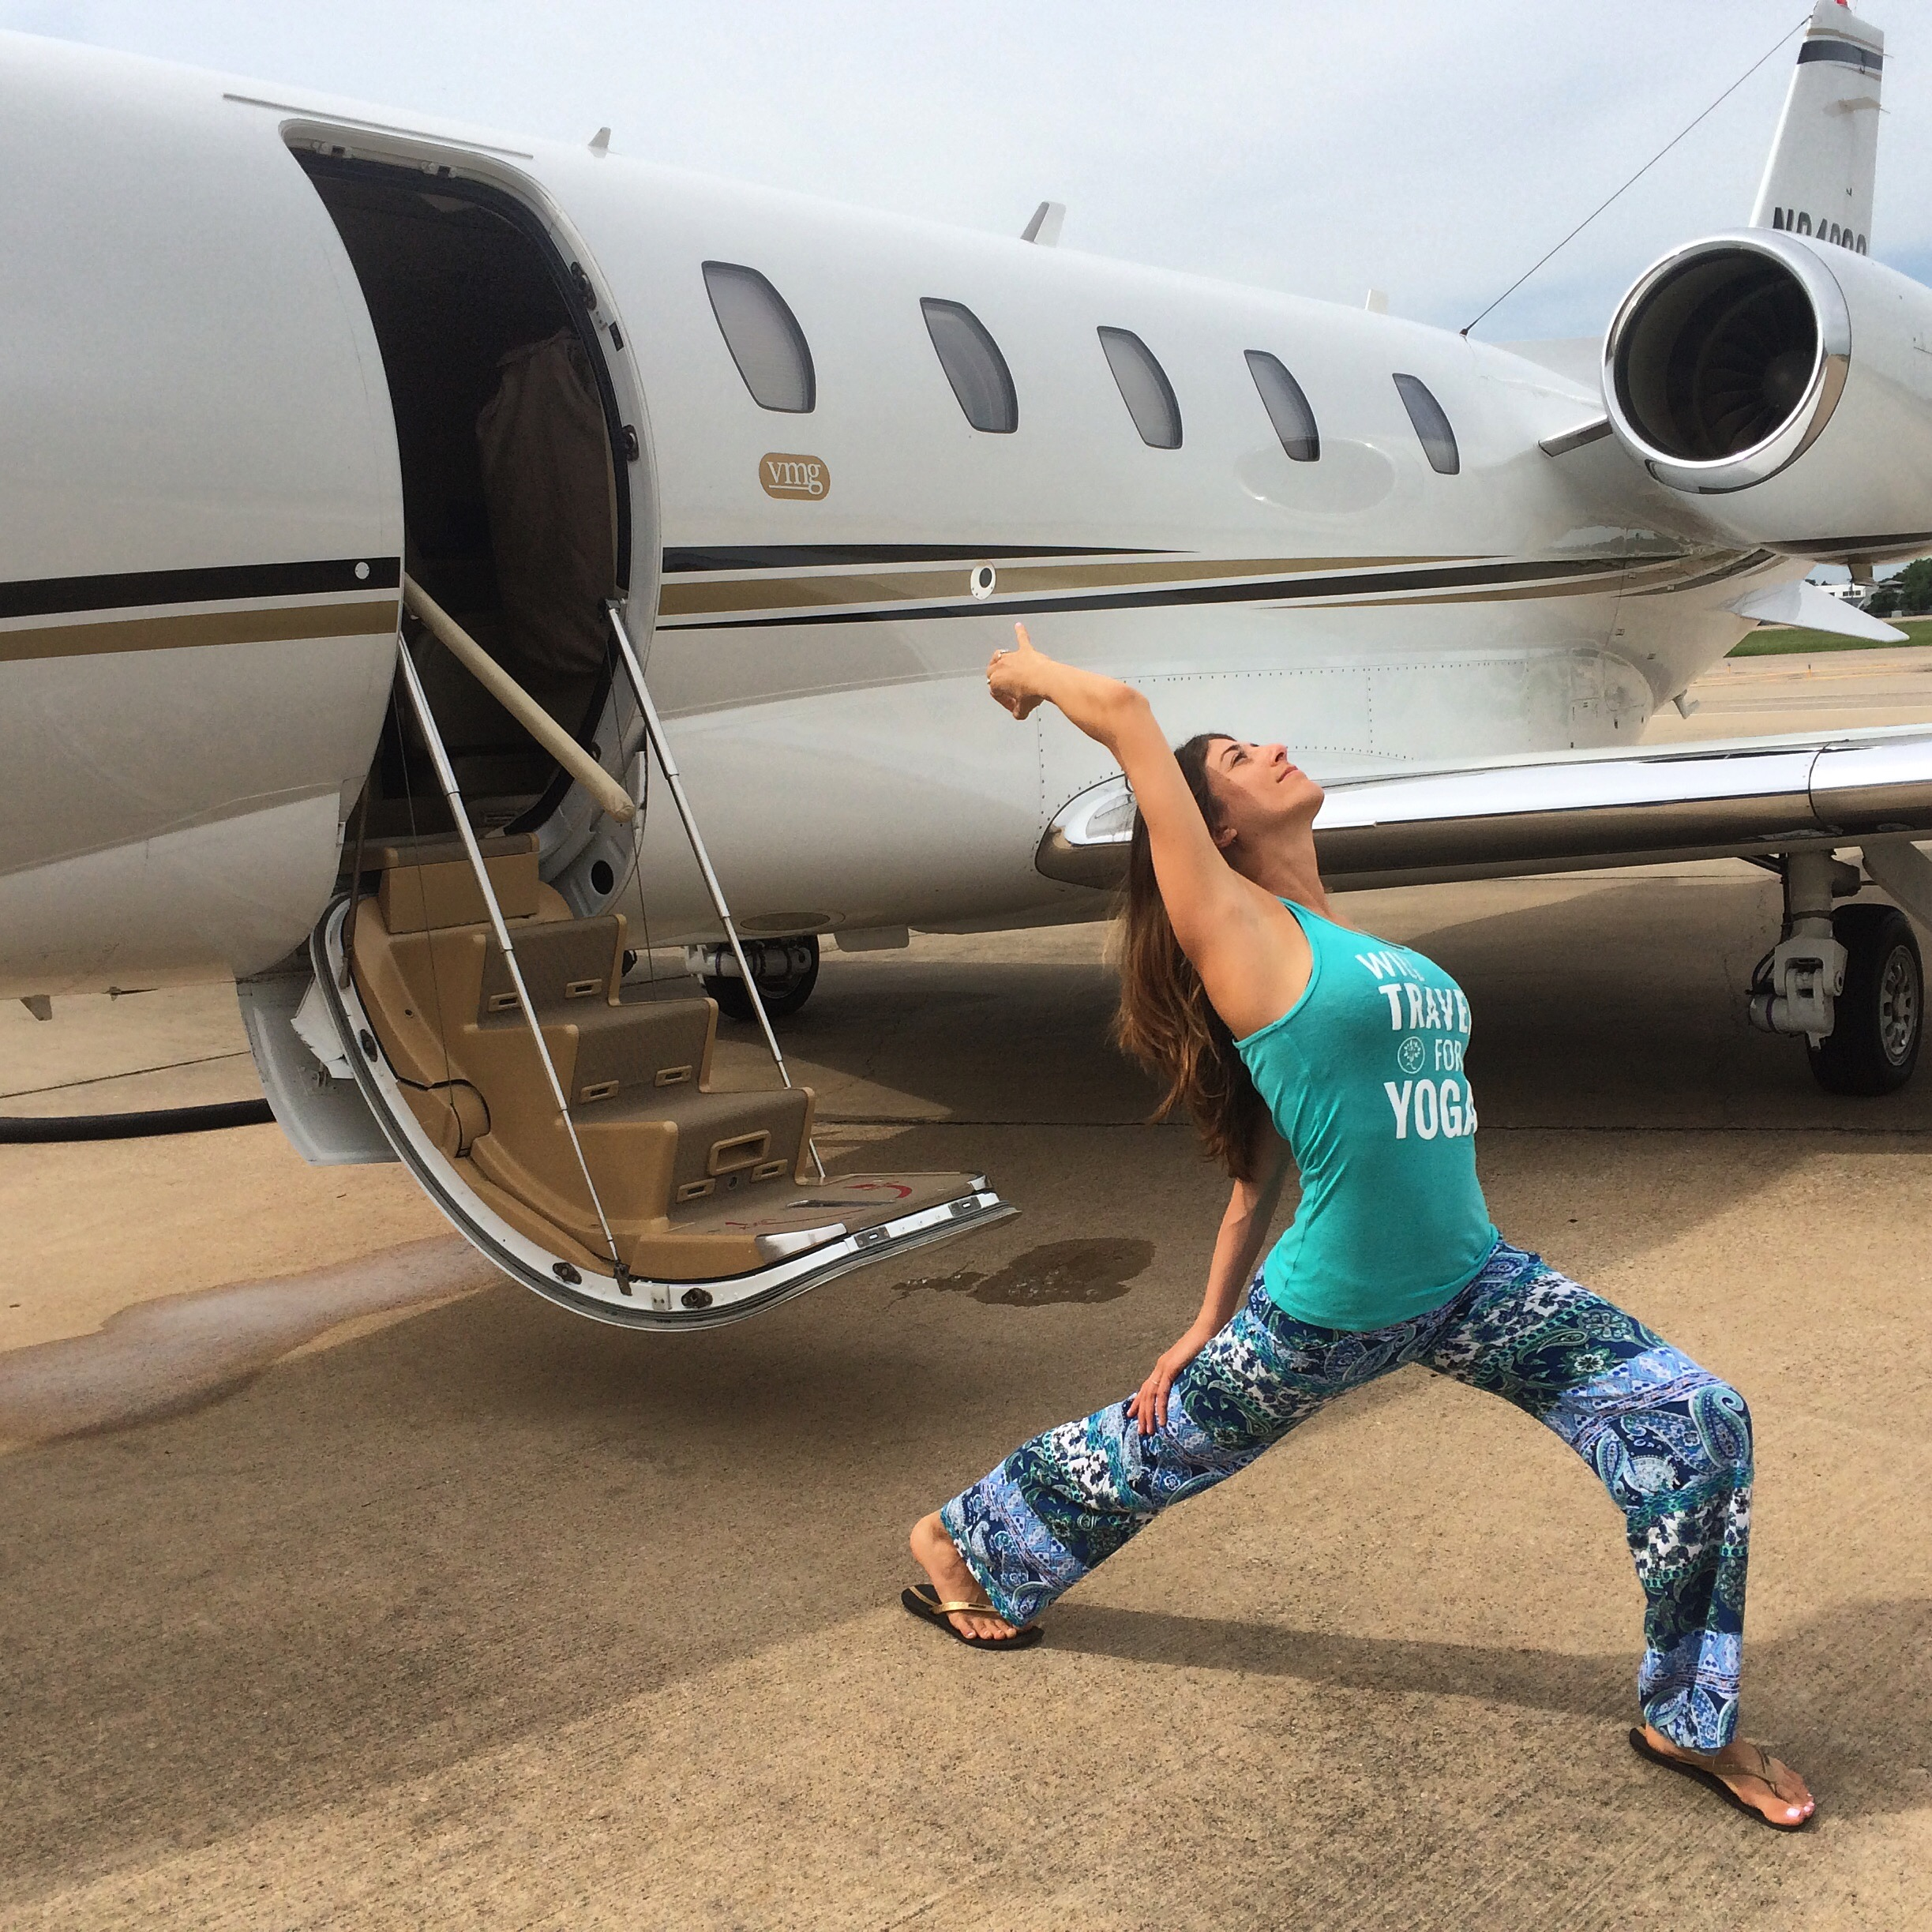 """Outside the jet, doing my #Stopdropandyoga, reppin' my @yogatraveltree """"Will Travel For Yoga"""" tank - a staple on my journeys!"""